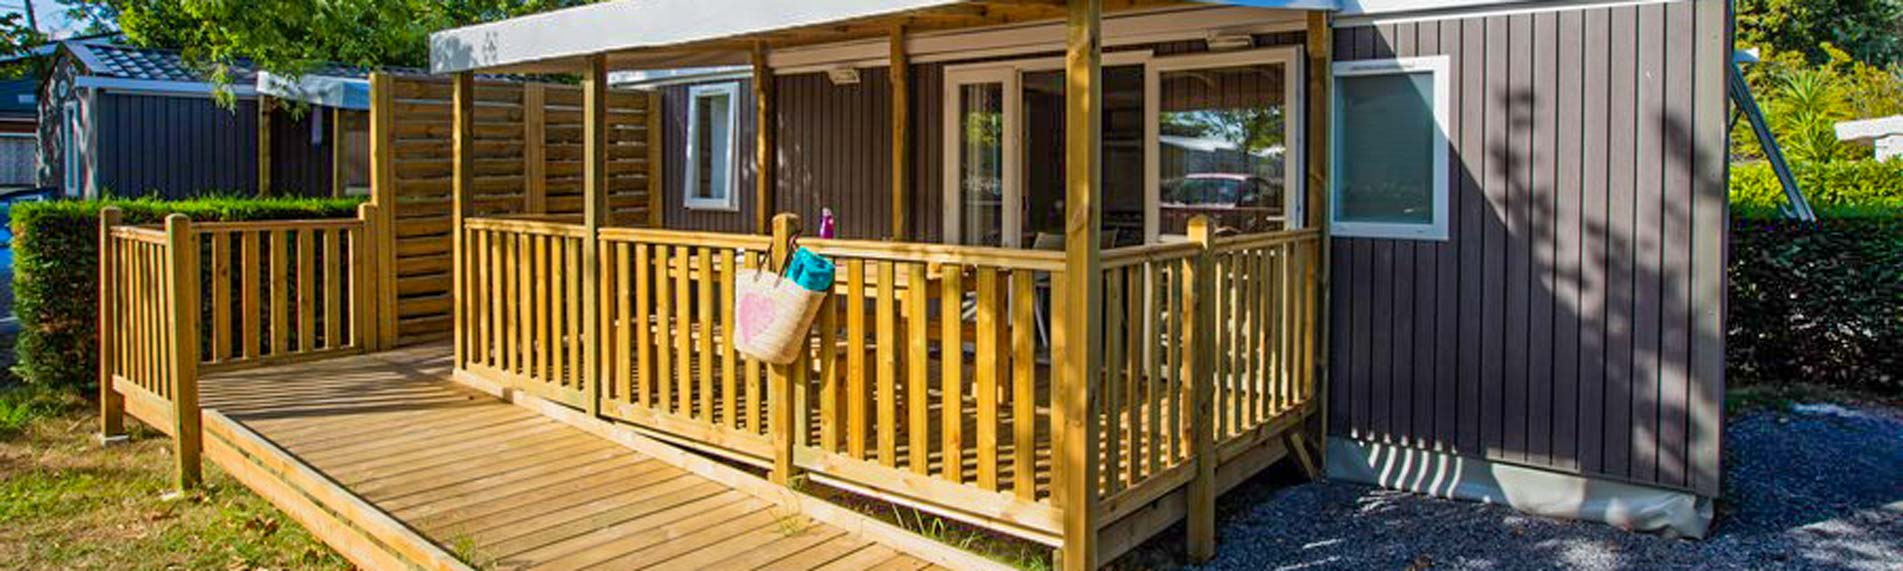 location mobil-home PMR camping landes